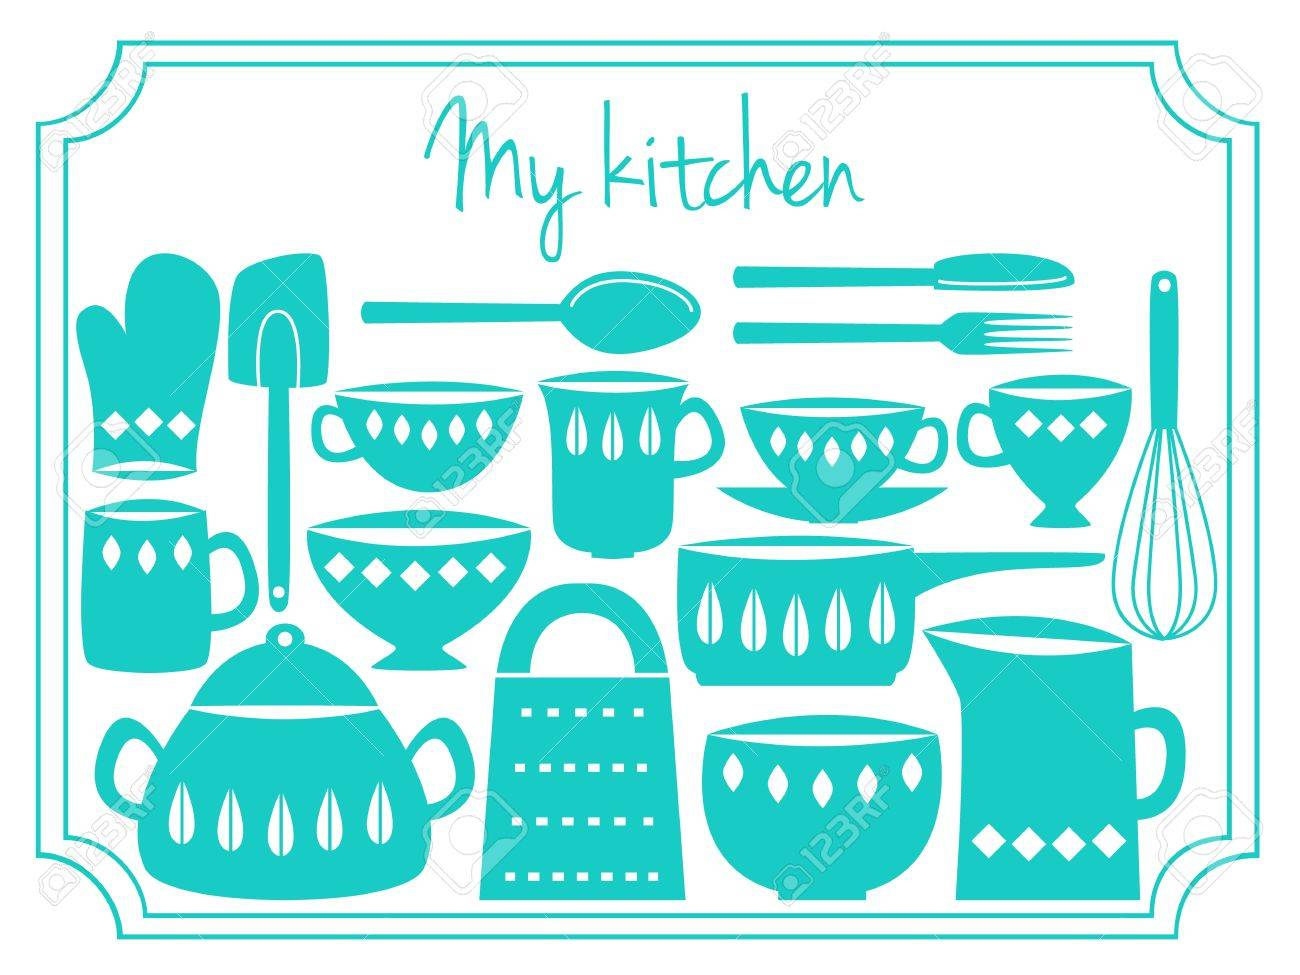 illustration of kitchen dishes and utensils, retro style royalty